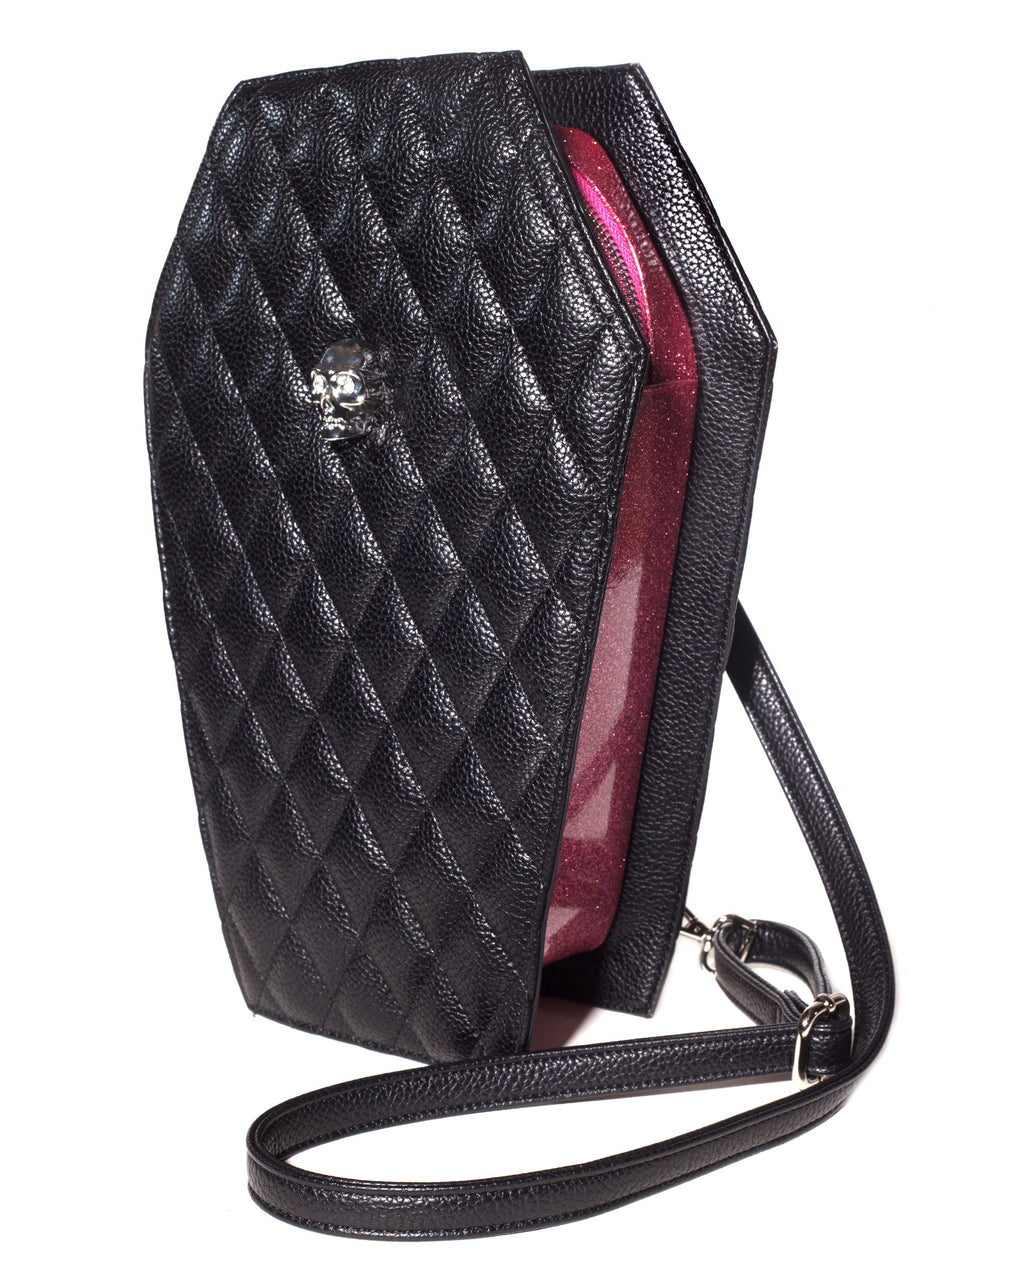 Elvira Coffin Backpack Matte Black and Bubbly Pink Sparkle